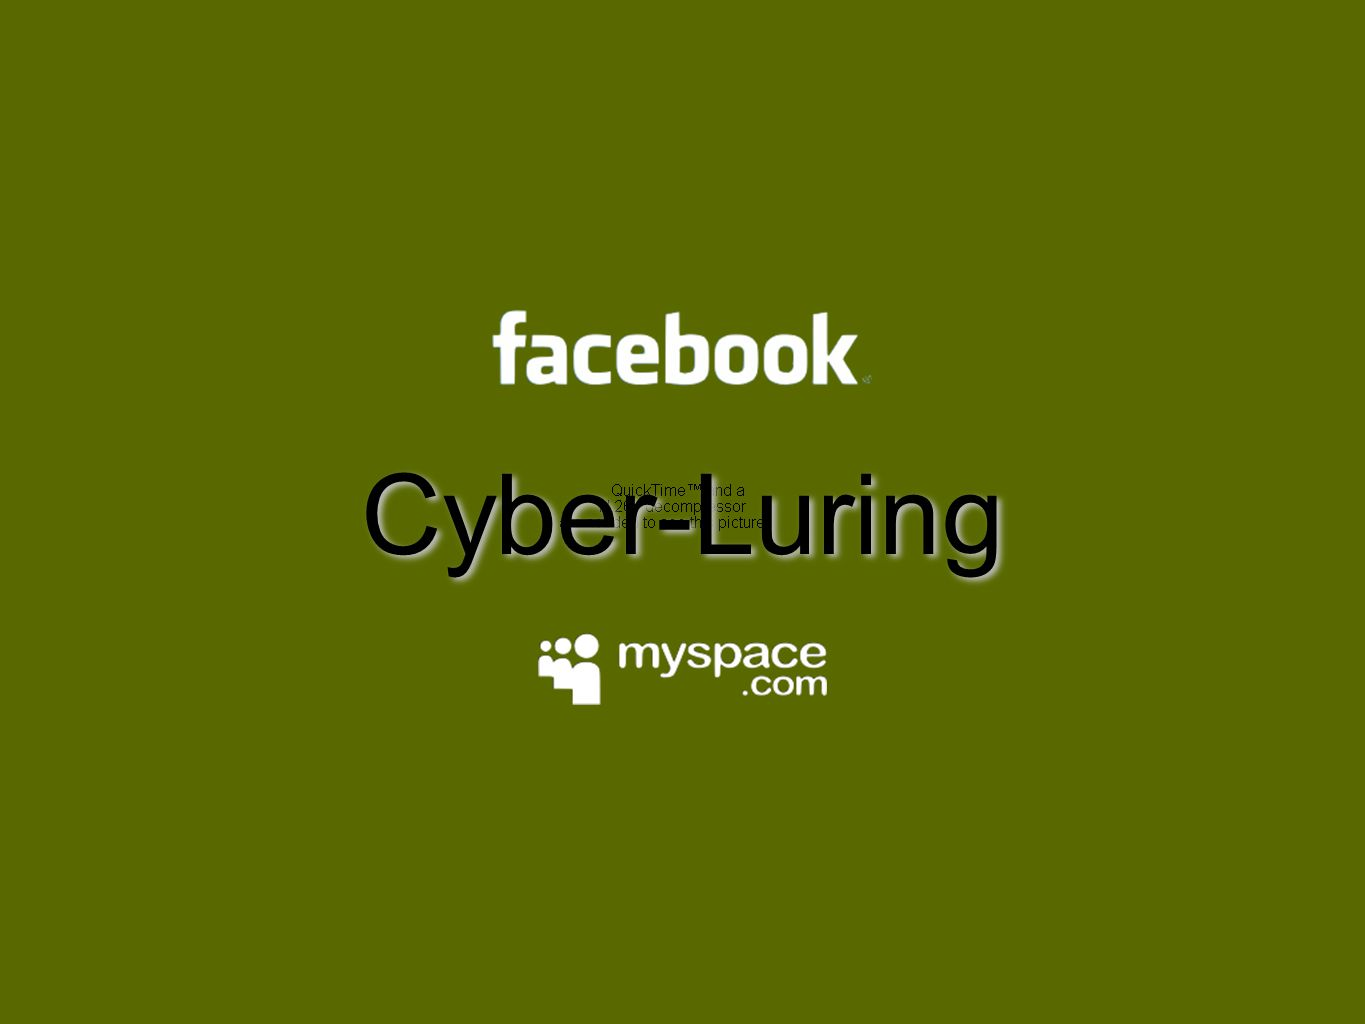 Cyber-Luring